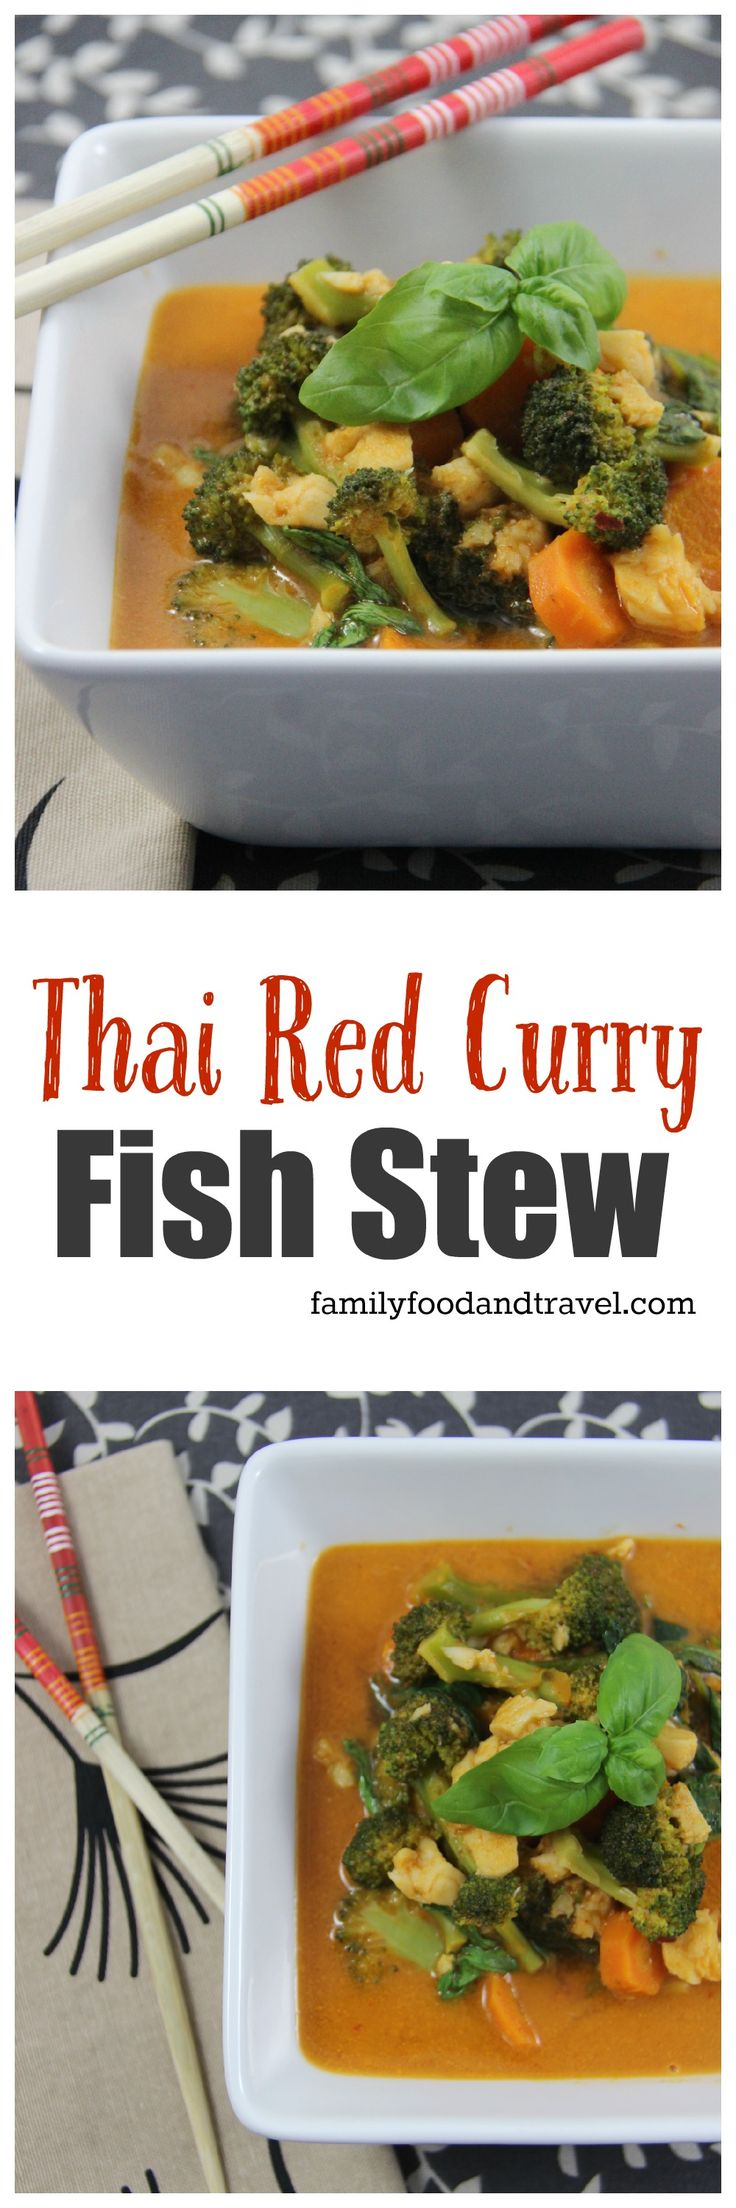 Thai Red Curry Fish Stew a delicious combination of Thai curry, lots of fresh vegetables and light sole. A fast weeknight dinner filled with flavour.